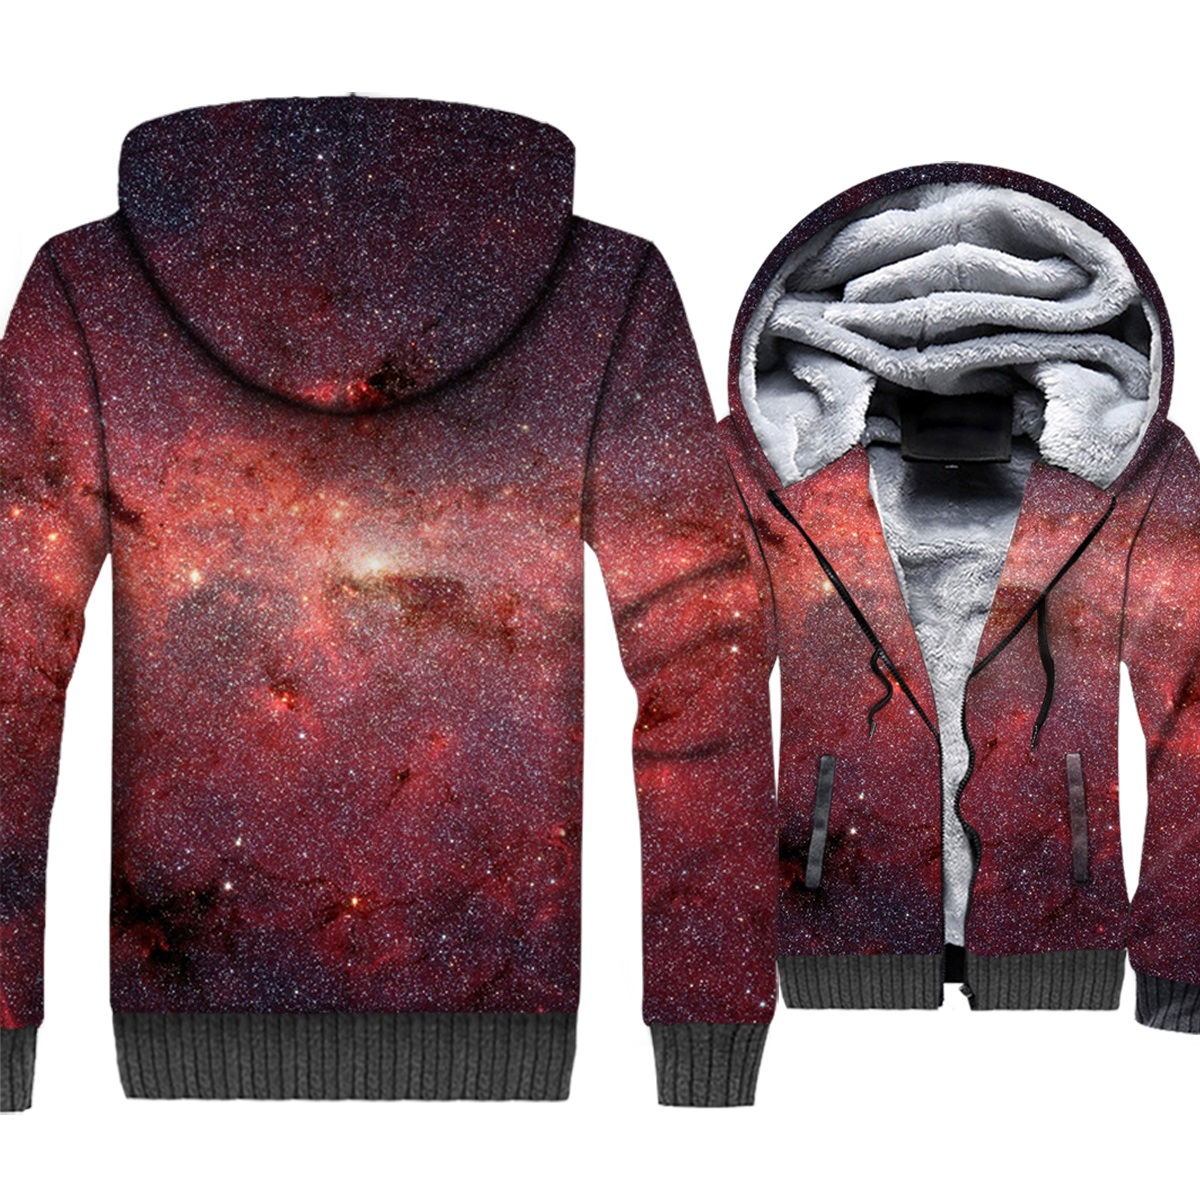 fashion warm jacket wool liner sportswear jacket starry sky Sweatshirt Men's thick coat 3D print hoodies 2019 new winter coats